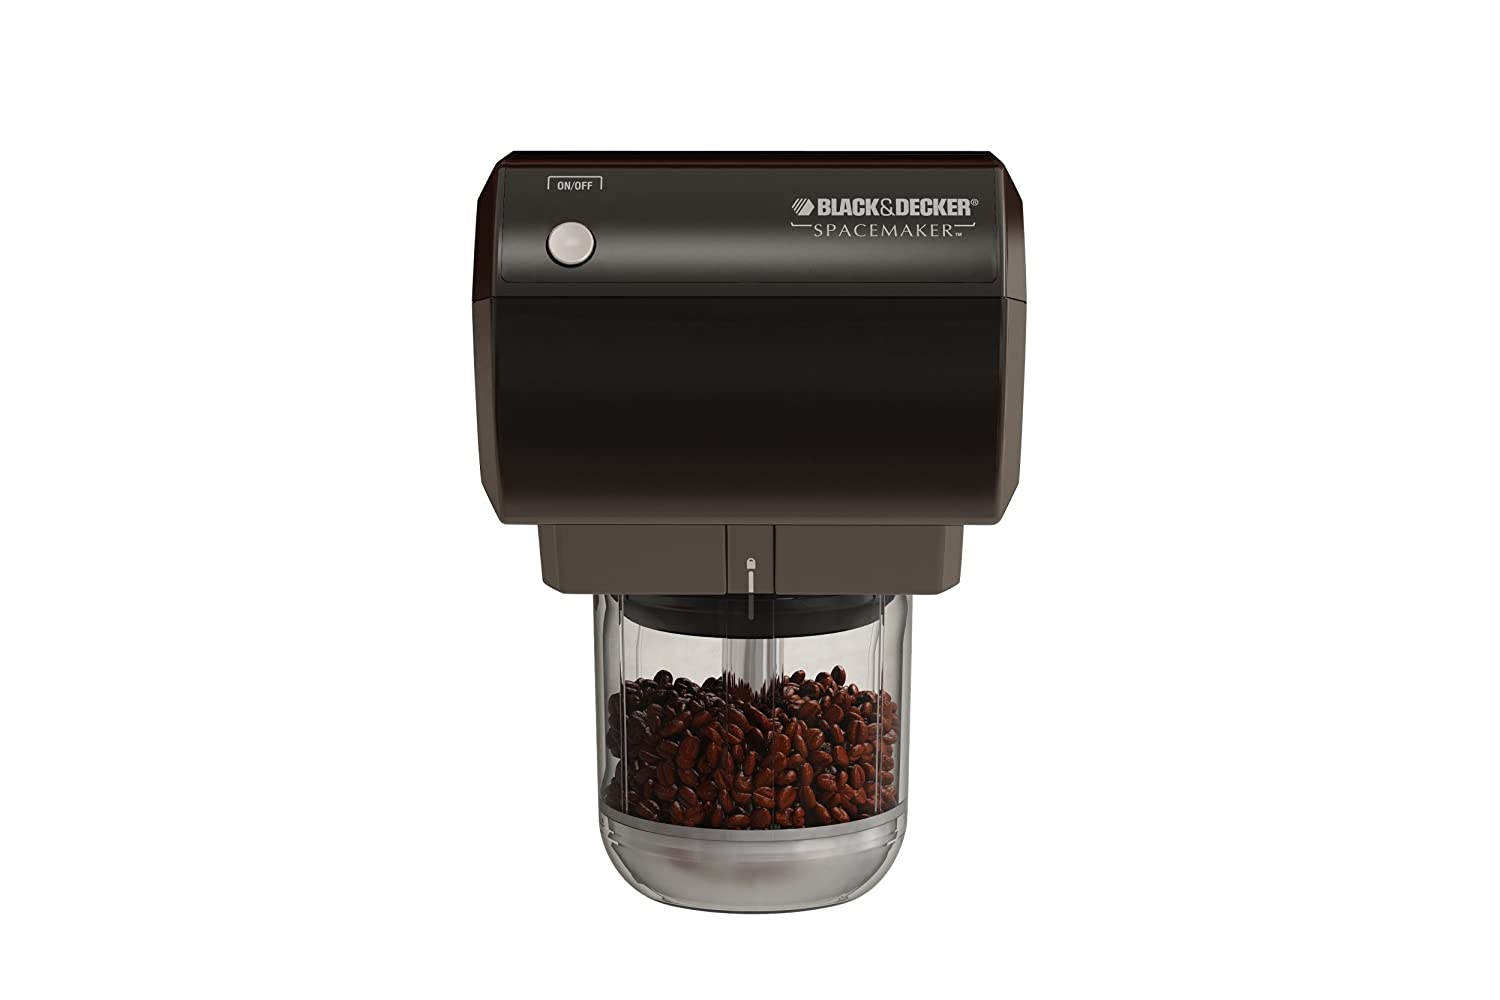 Black & Decker CG800B Spacemaker Traditional Mini Food Processor and Coffee Grinder, Black